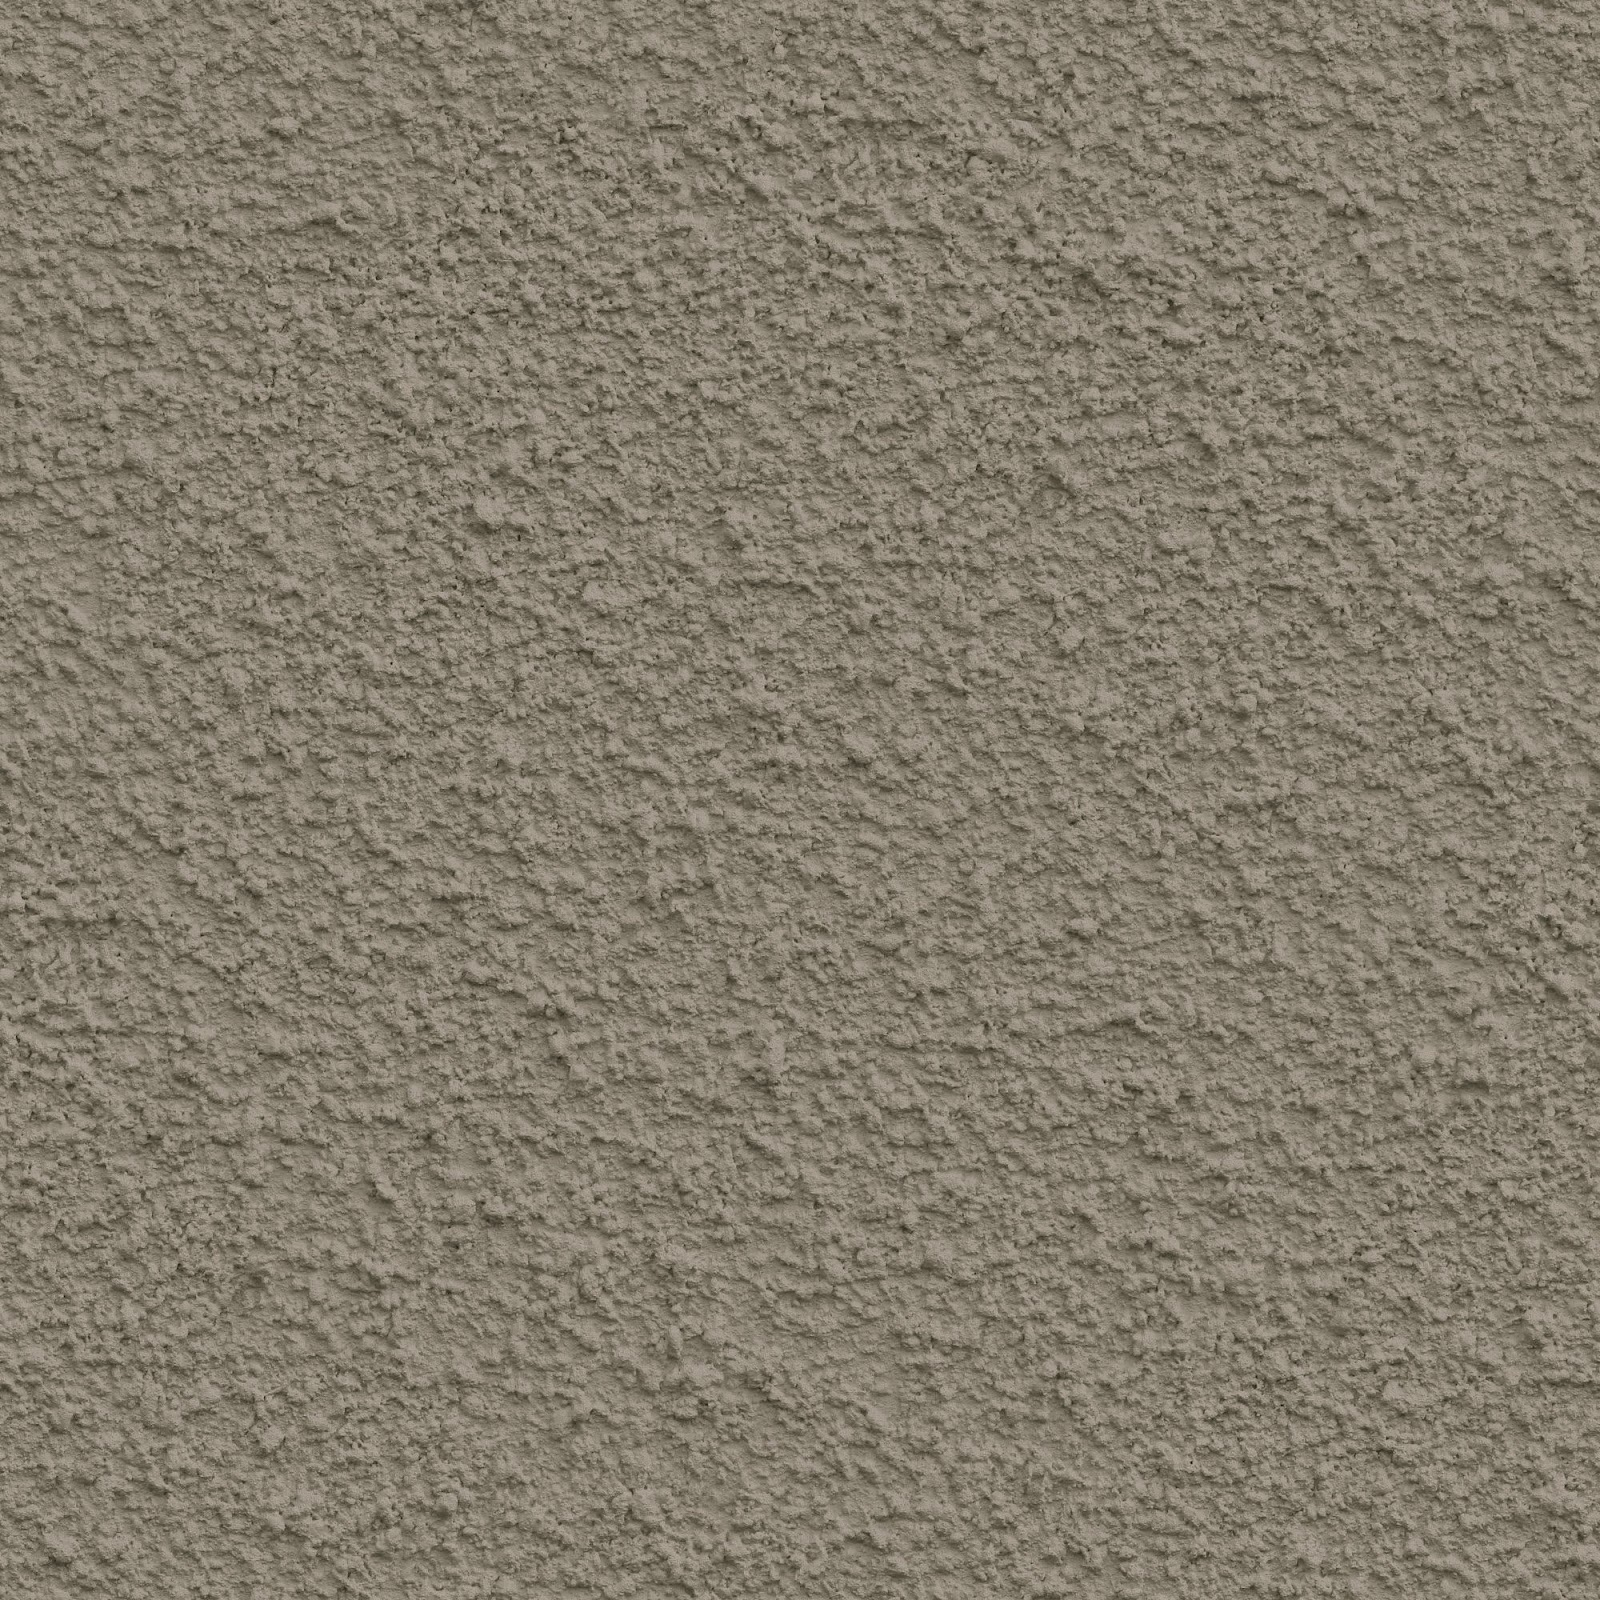 High Resolution Seamless Textures Free Seamless Stucco